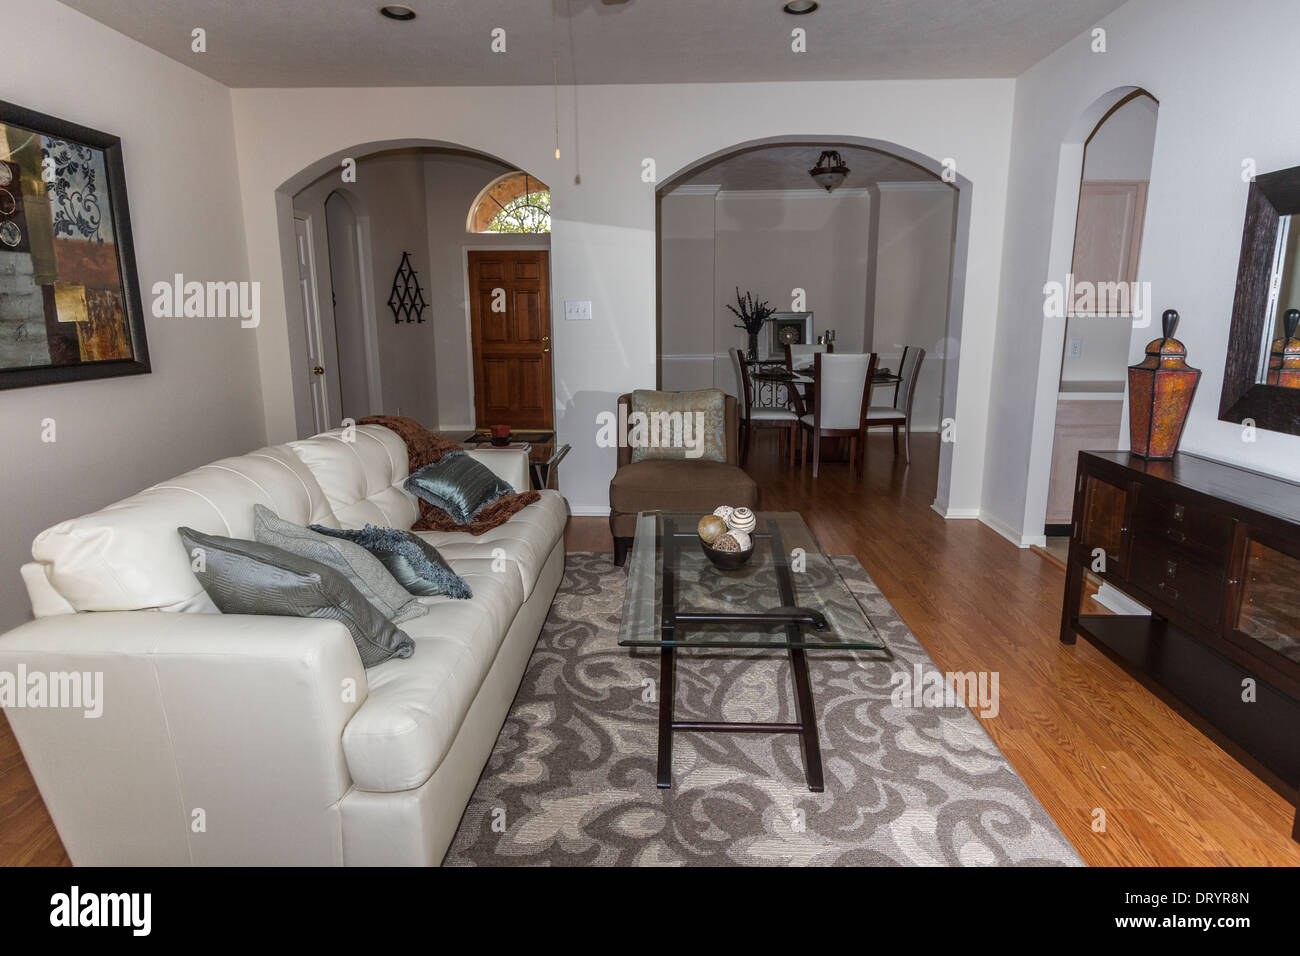 Living Room DIning And Entryway In Mid Size Suburban Home